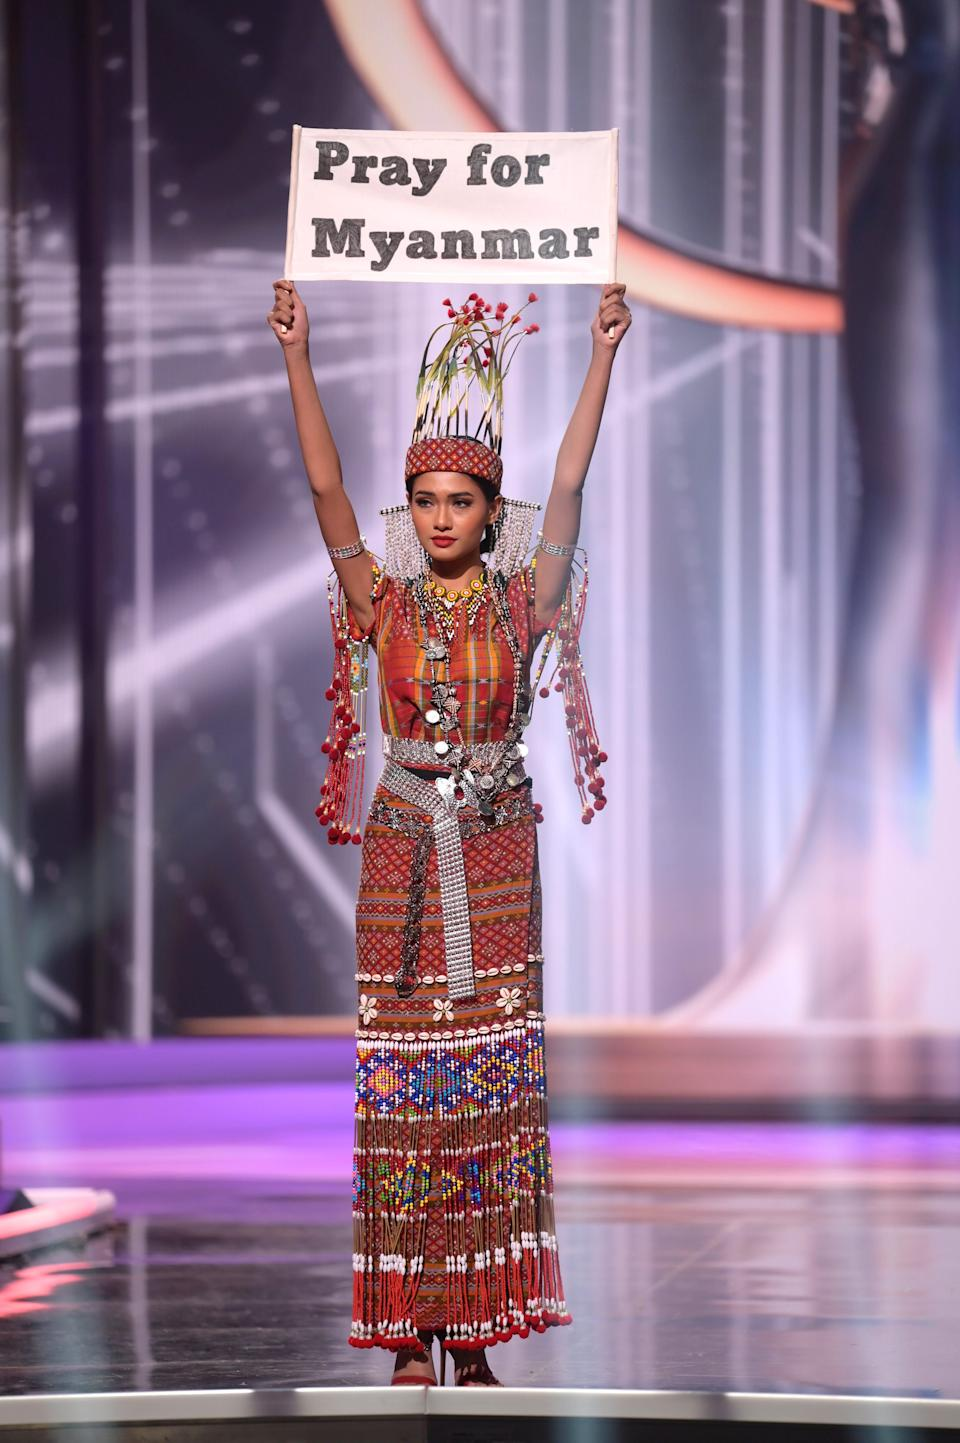 Thuzar Wint Lwin, Miss Universe Myanmar 2020, on stage during the National Costume Show at the Seminole Hard Rock Hotel & Casino in Hollywood, Florida, on May 13, 2021.